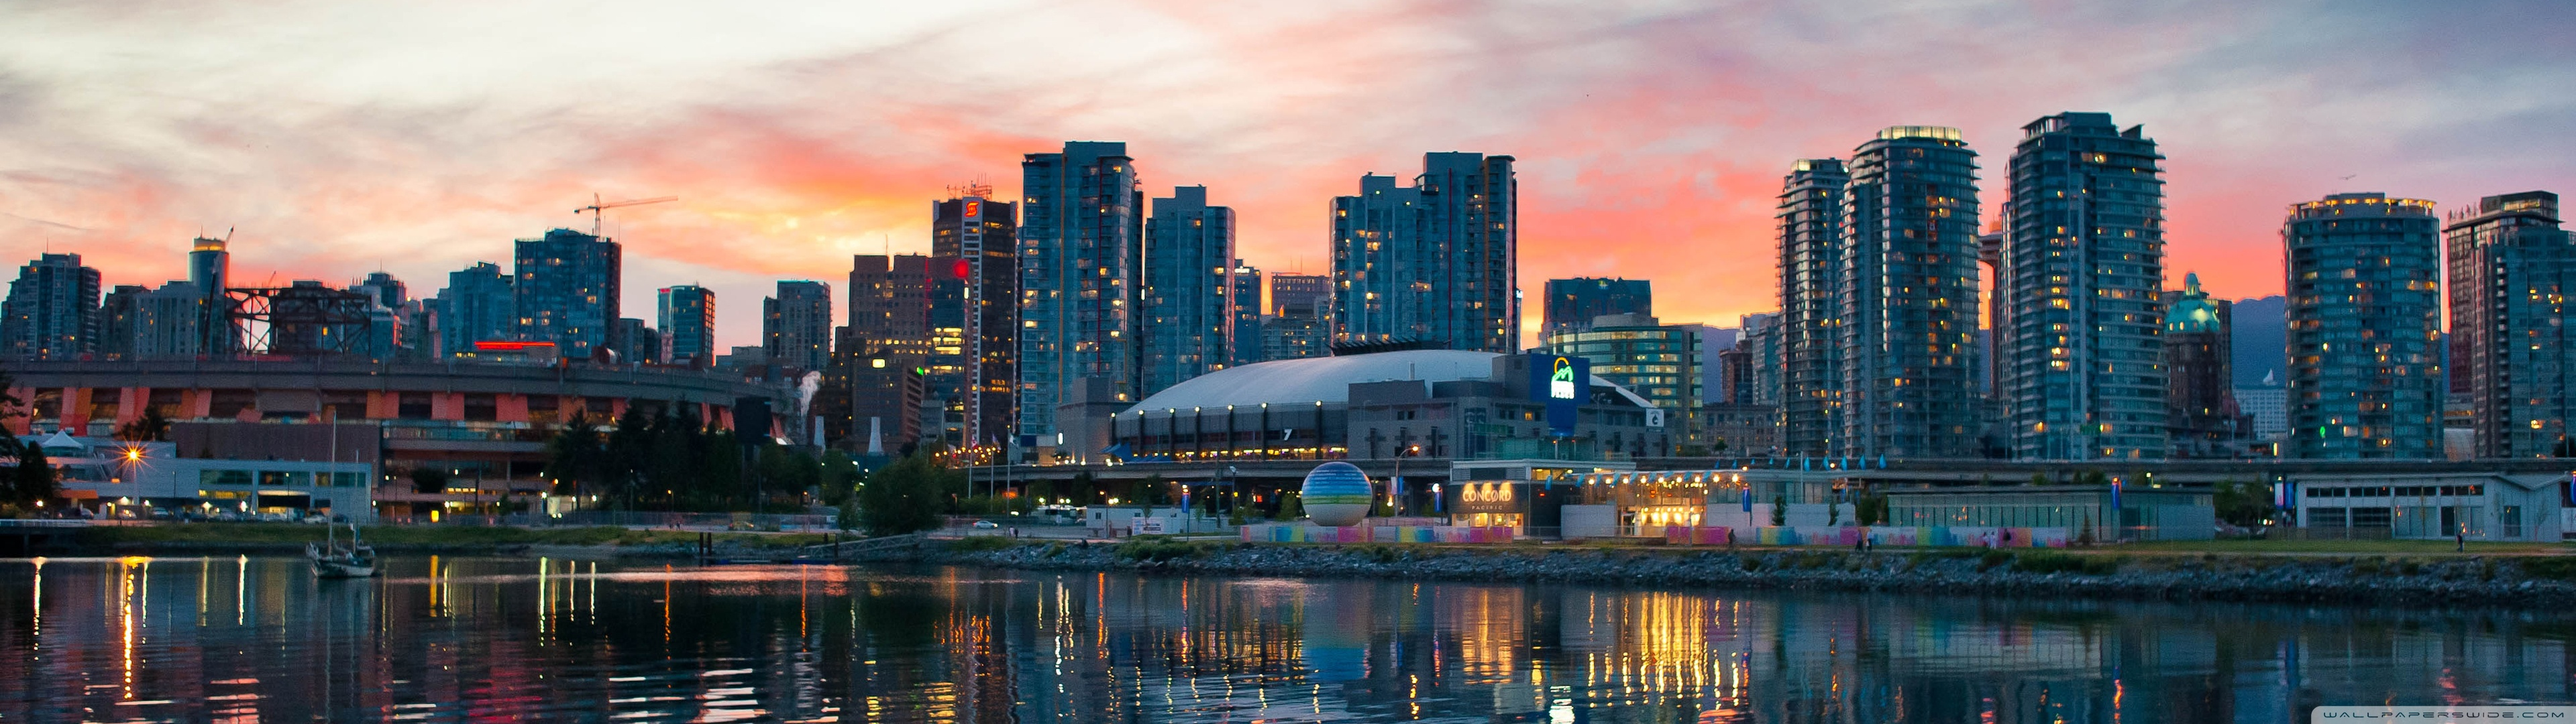 Vancouver Sunset HD desktop wallpaper : High Definition